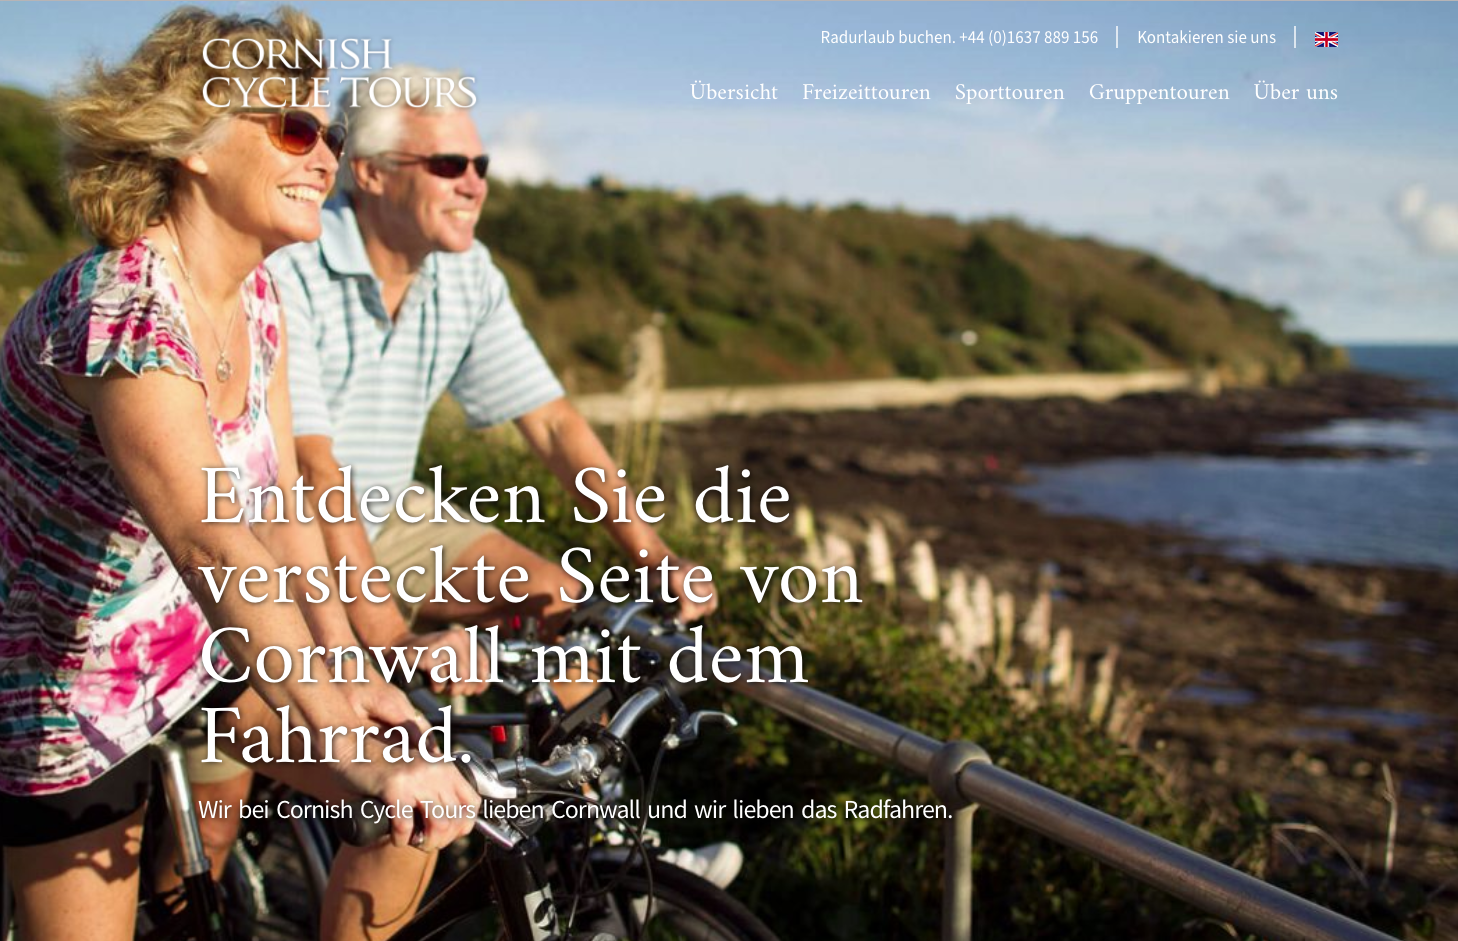 cornish cycle tours german website